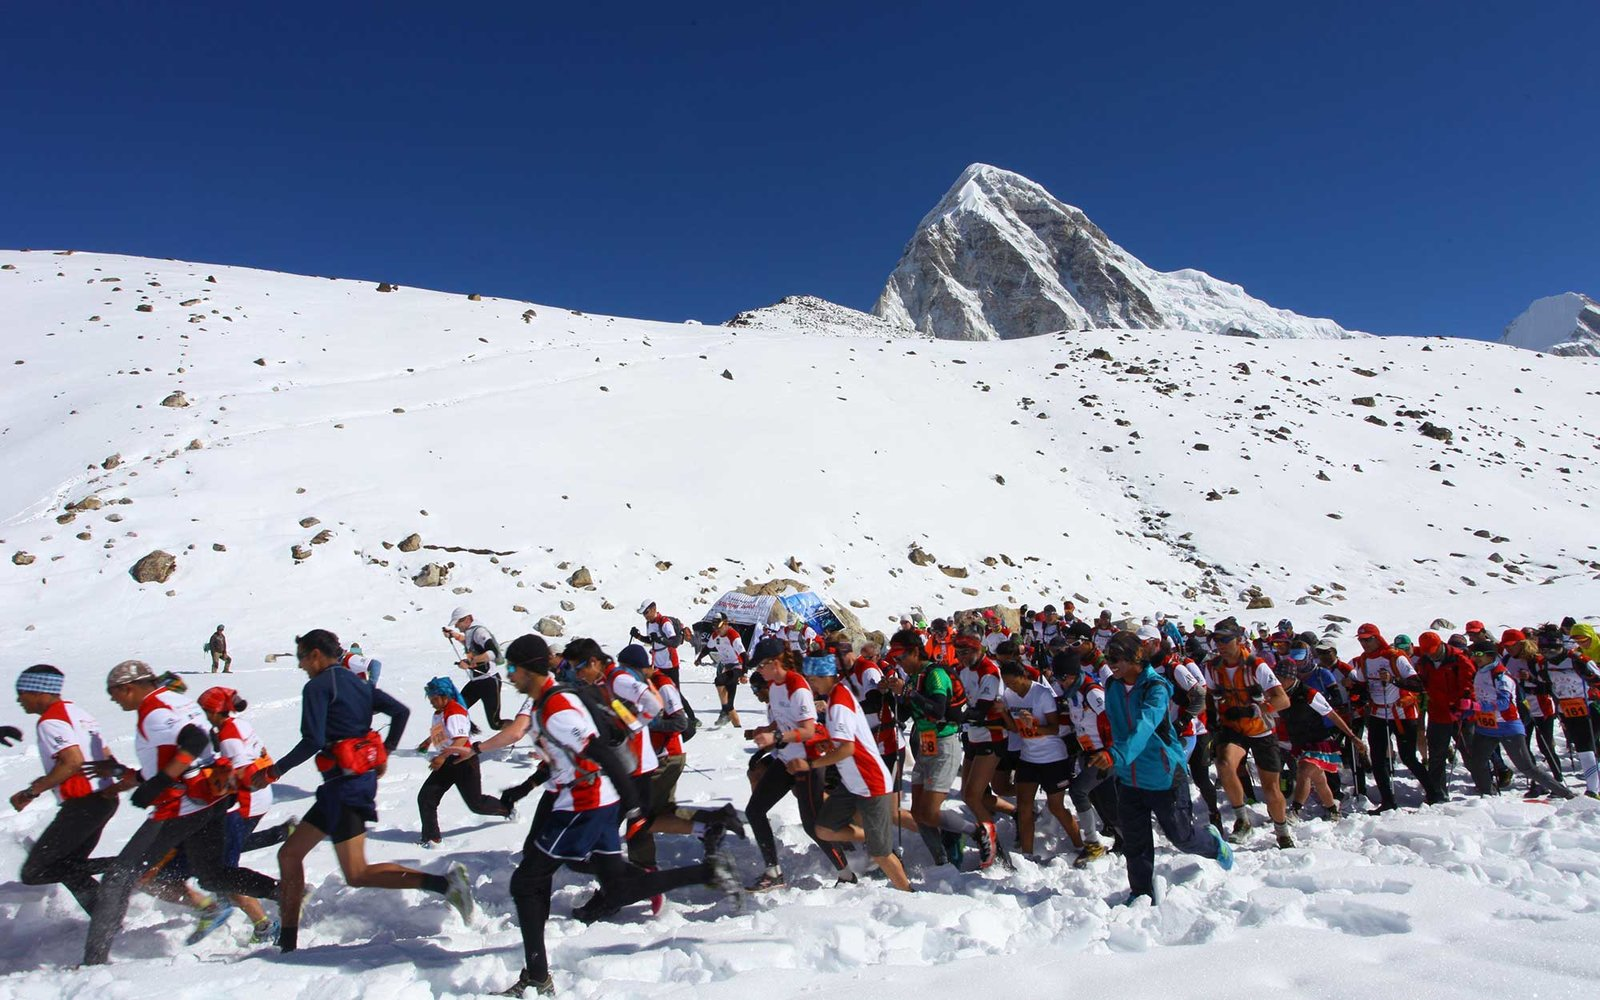 E1ATWF Solukhumbu, Nepal. 29th May, 2014. Participants from different countries and regions compete during the world's highest marathon event, at Everest Base Camp in Khumbu region, Solukhumbu, Nepal, May 29, 2014. © Sunil Sharma/Xinhua/Alamy Live News